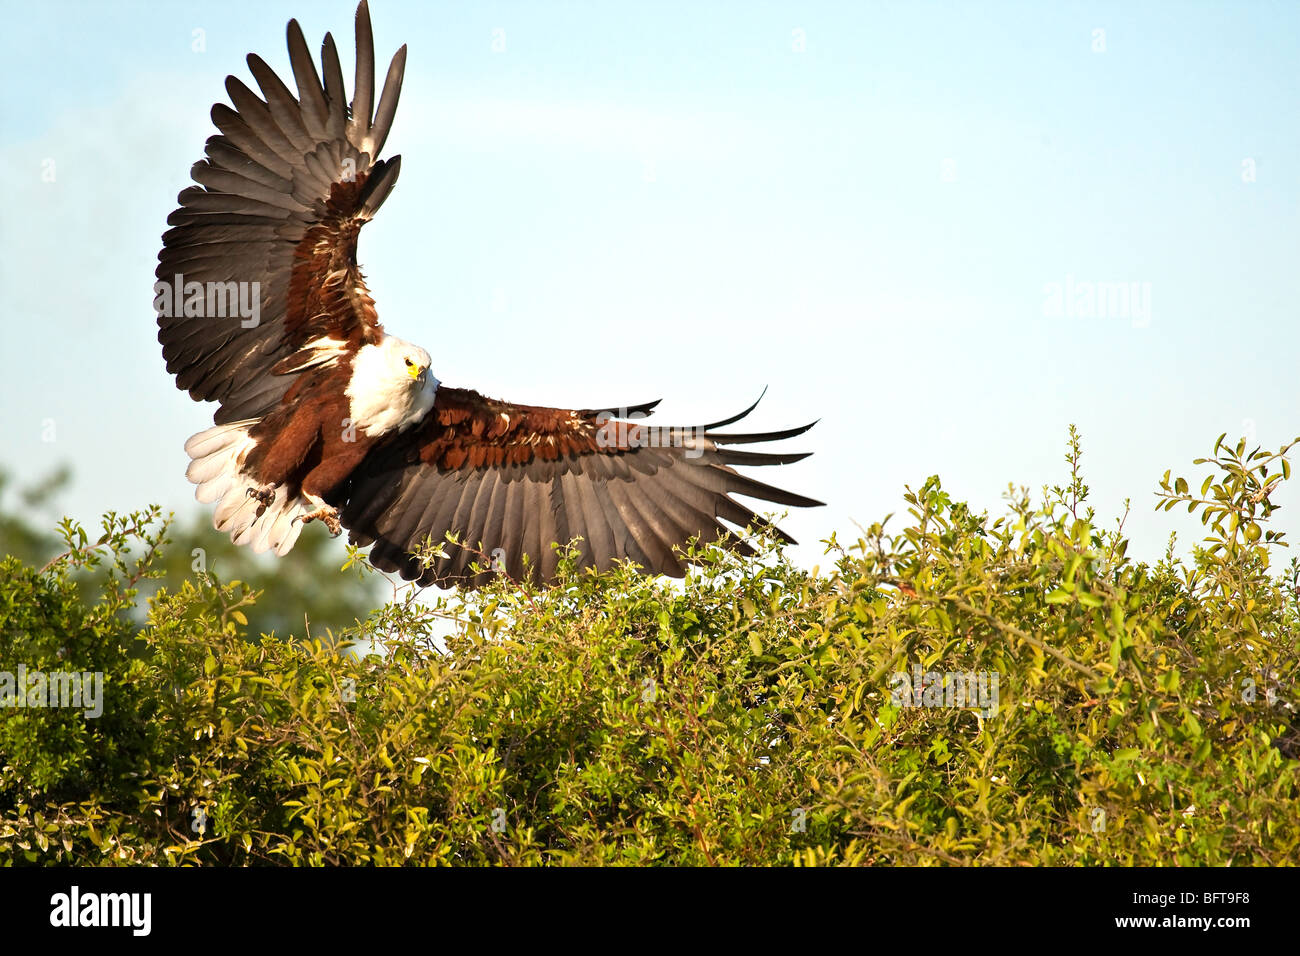 Fish Eagle with wings spread and talons showing coming into land on the top of a bush - Stock Image